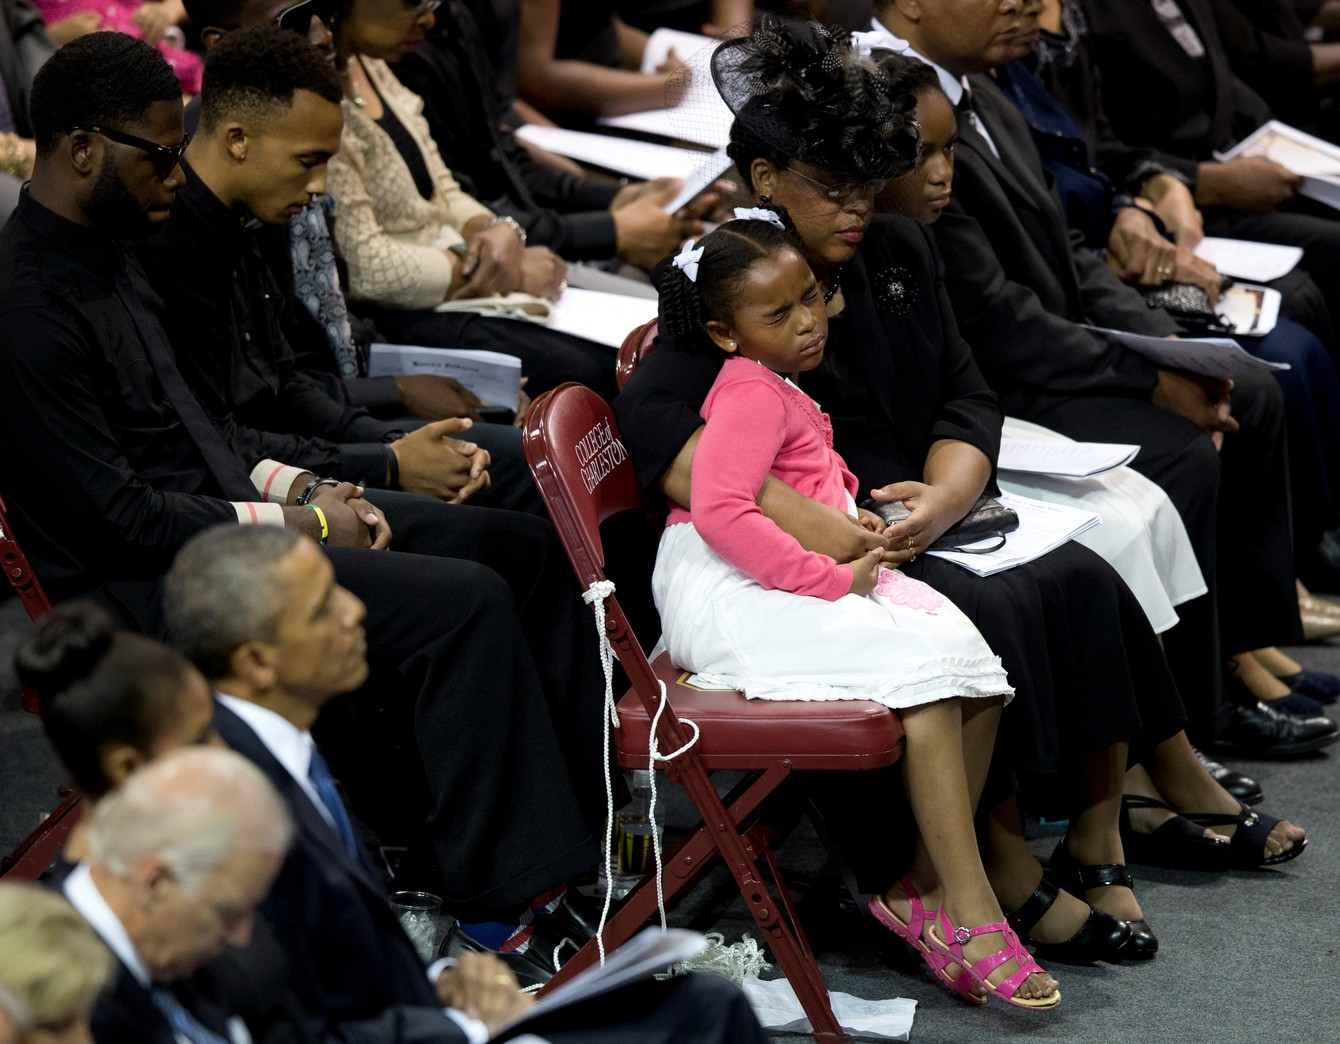 The widow of Clementa Pinckney, a pastor and South Carolina lawmaker slain in the mass murder at Charleston's Mother Emanuel African Methodist Episcopal Church, hugs her daughter during a 2015 memorial service for victims of that attack. (AP/Carolyn Kaster)